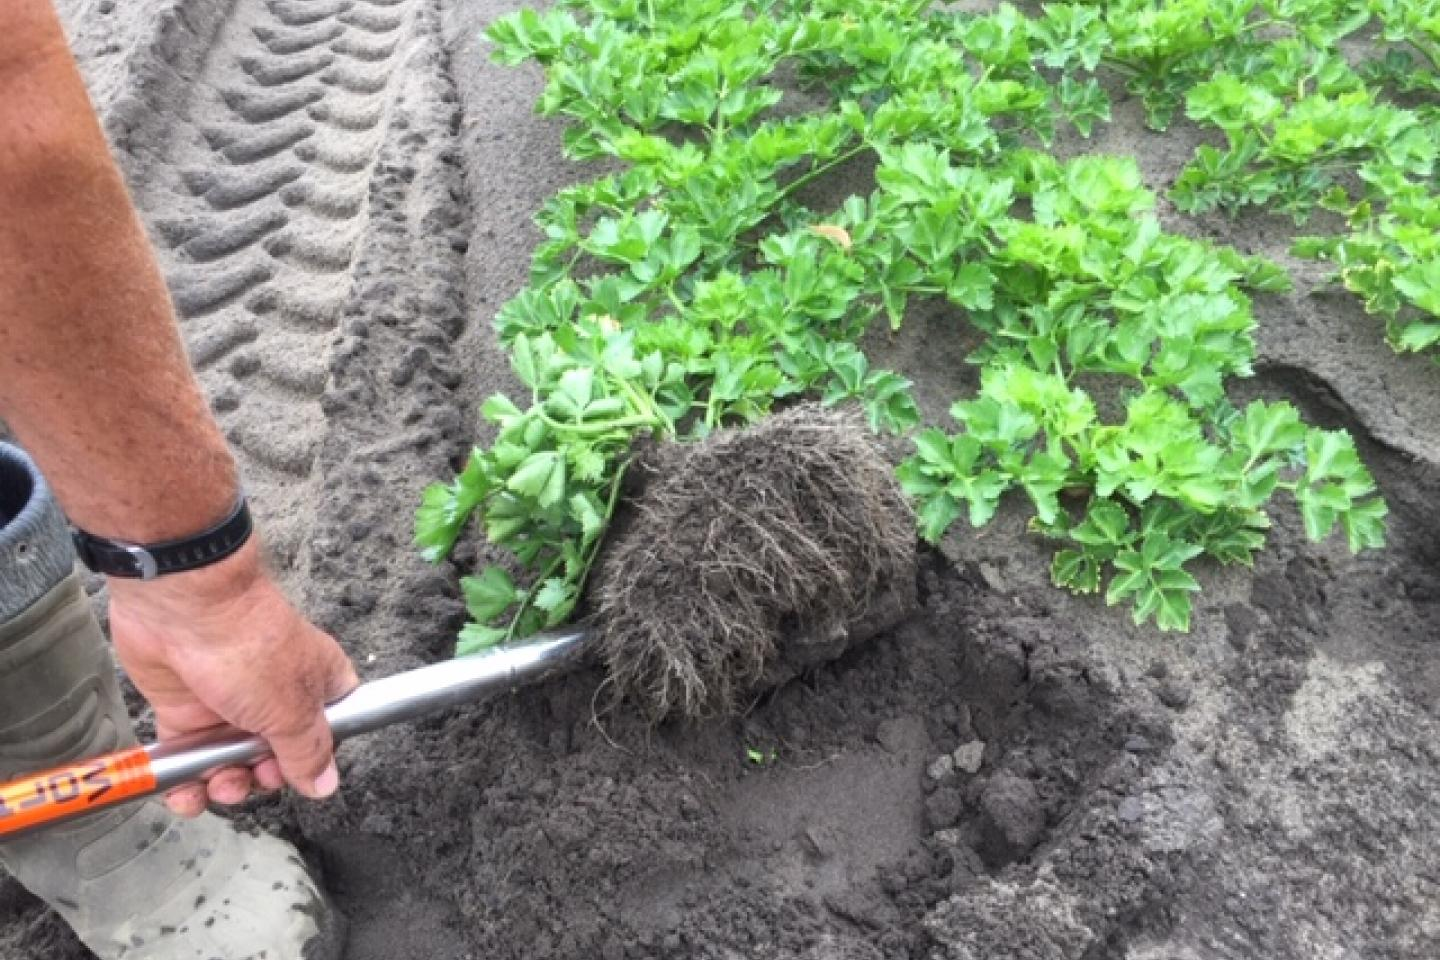 Healthy celery roots are evident int his high-yielding letrtuce bed which was deep tilled after the crop was sown.